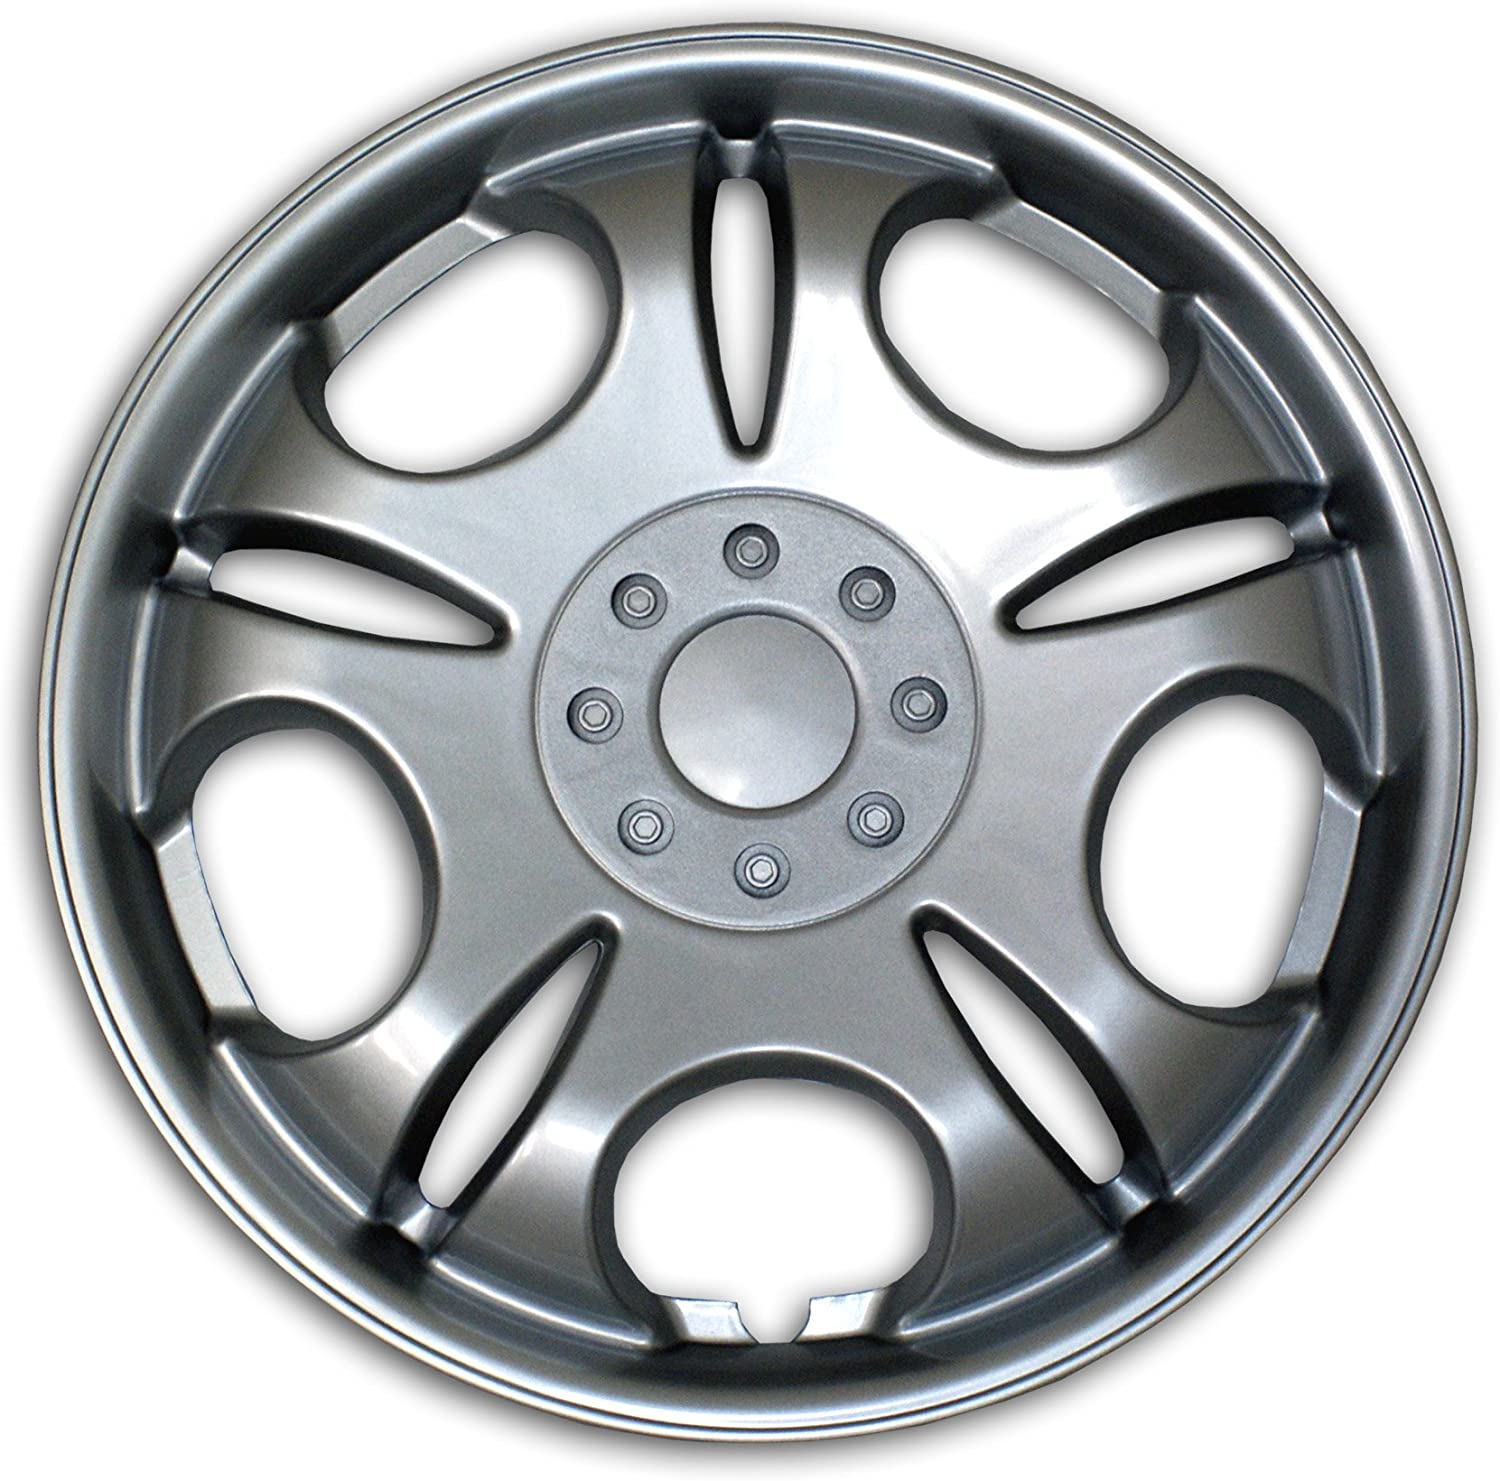 Type Metallic Silver Wheel Covers Hub-caps Pop-On Tuningpros WC3-15-503-S 15-Inches Style 503 Snap-On Pack of 4 Hubcaps